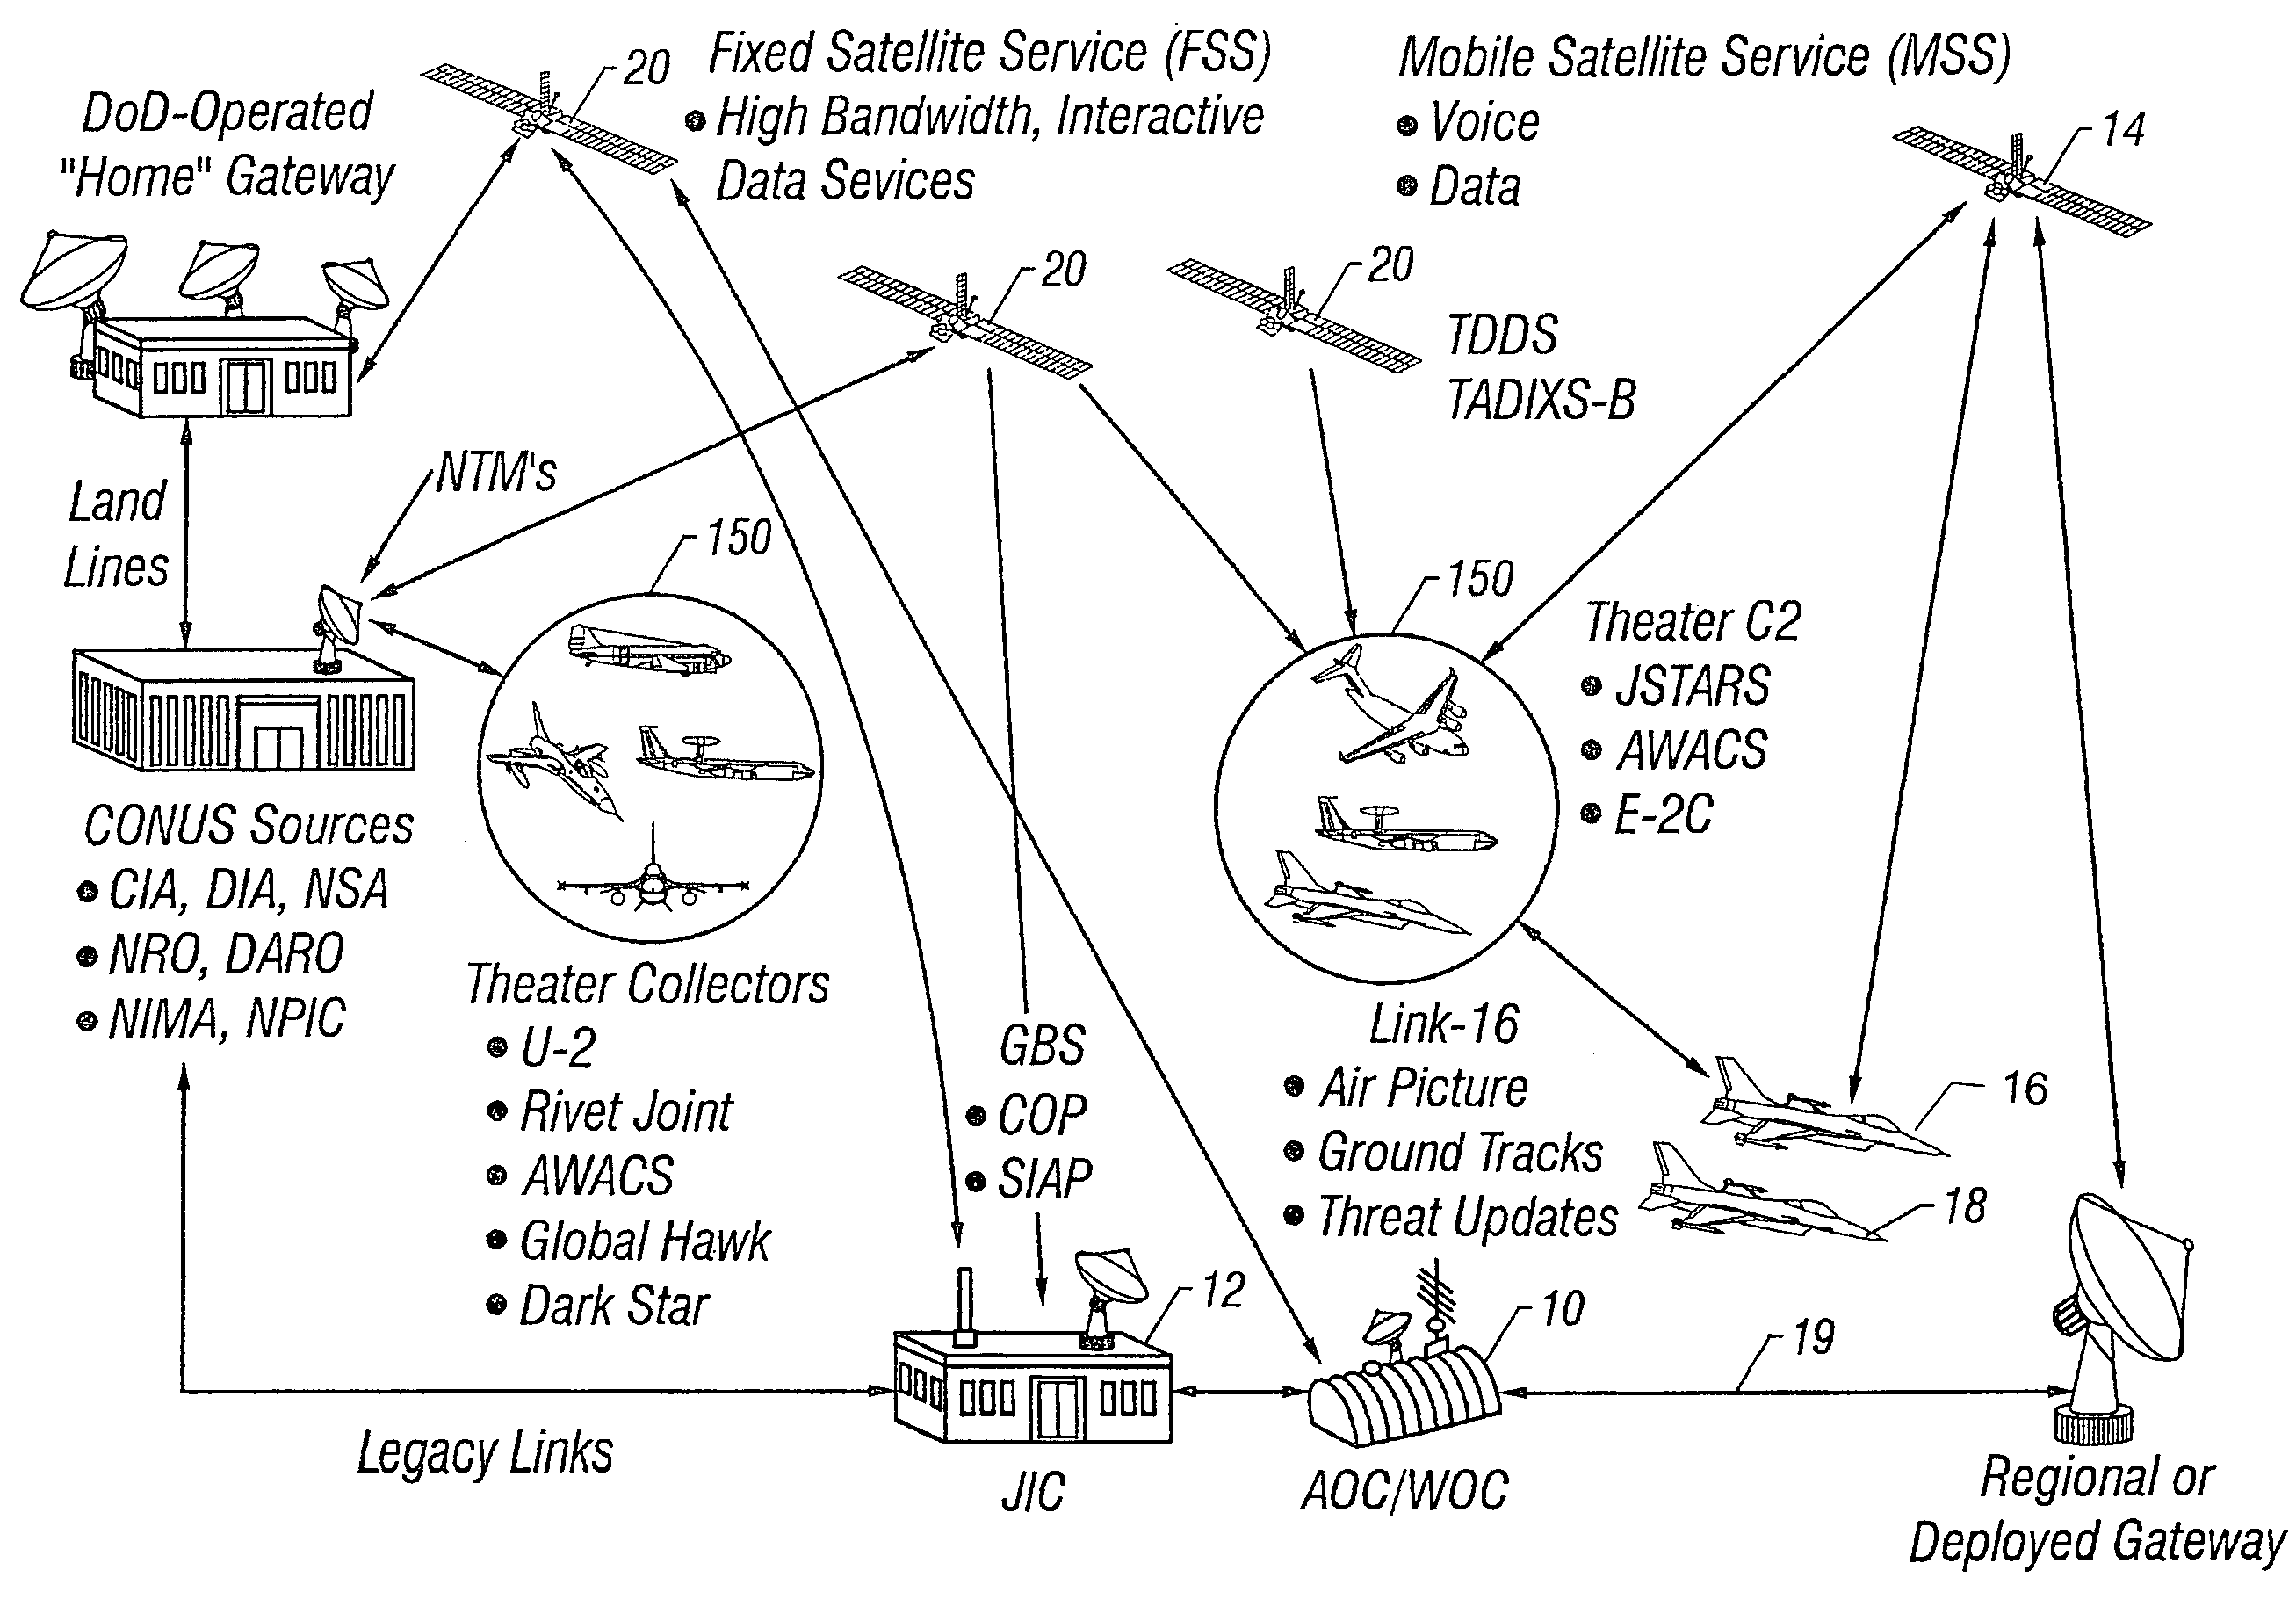 US8095466 in addition US20050234982 further 20979 as well US20060071851 as well US7324056. on satellite communication systems